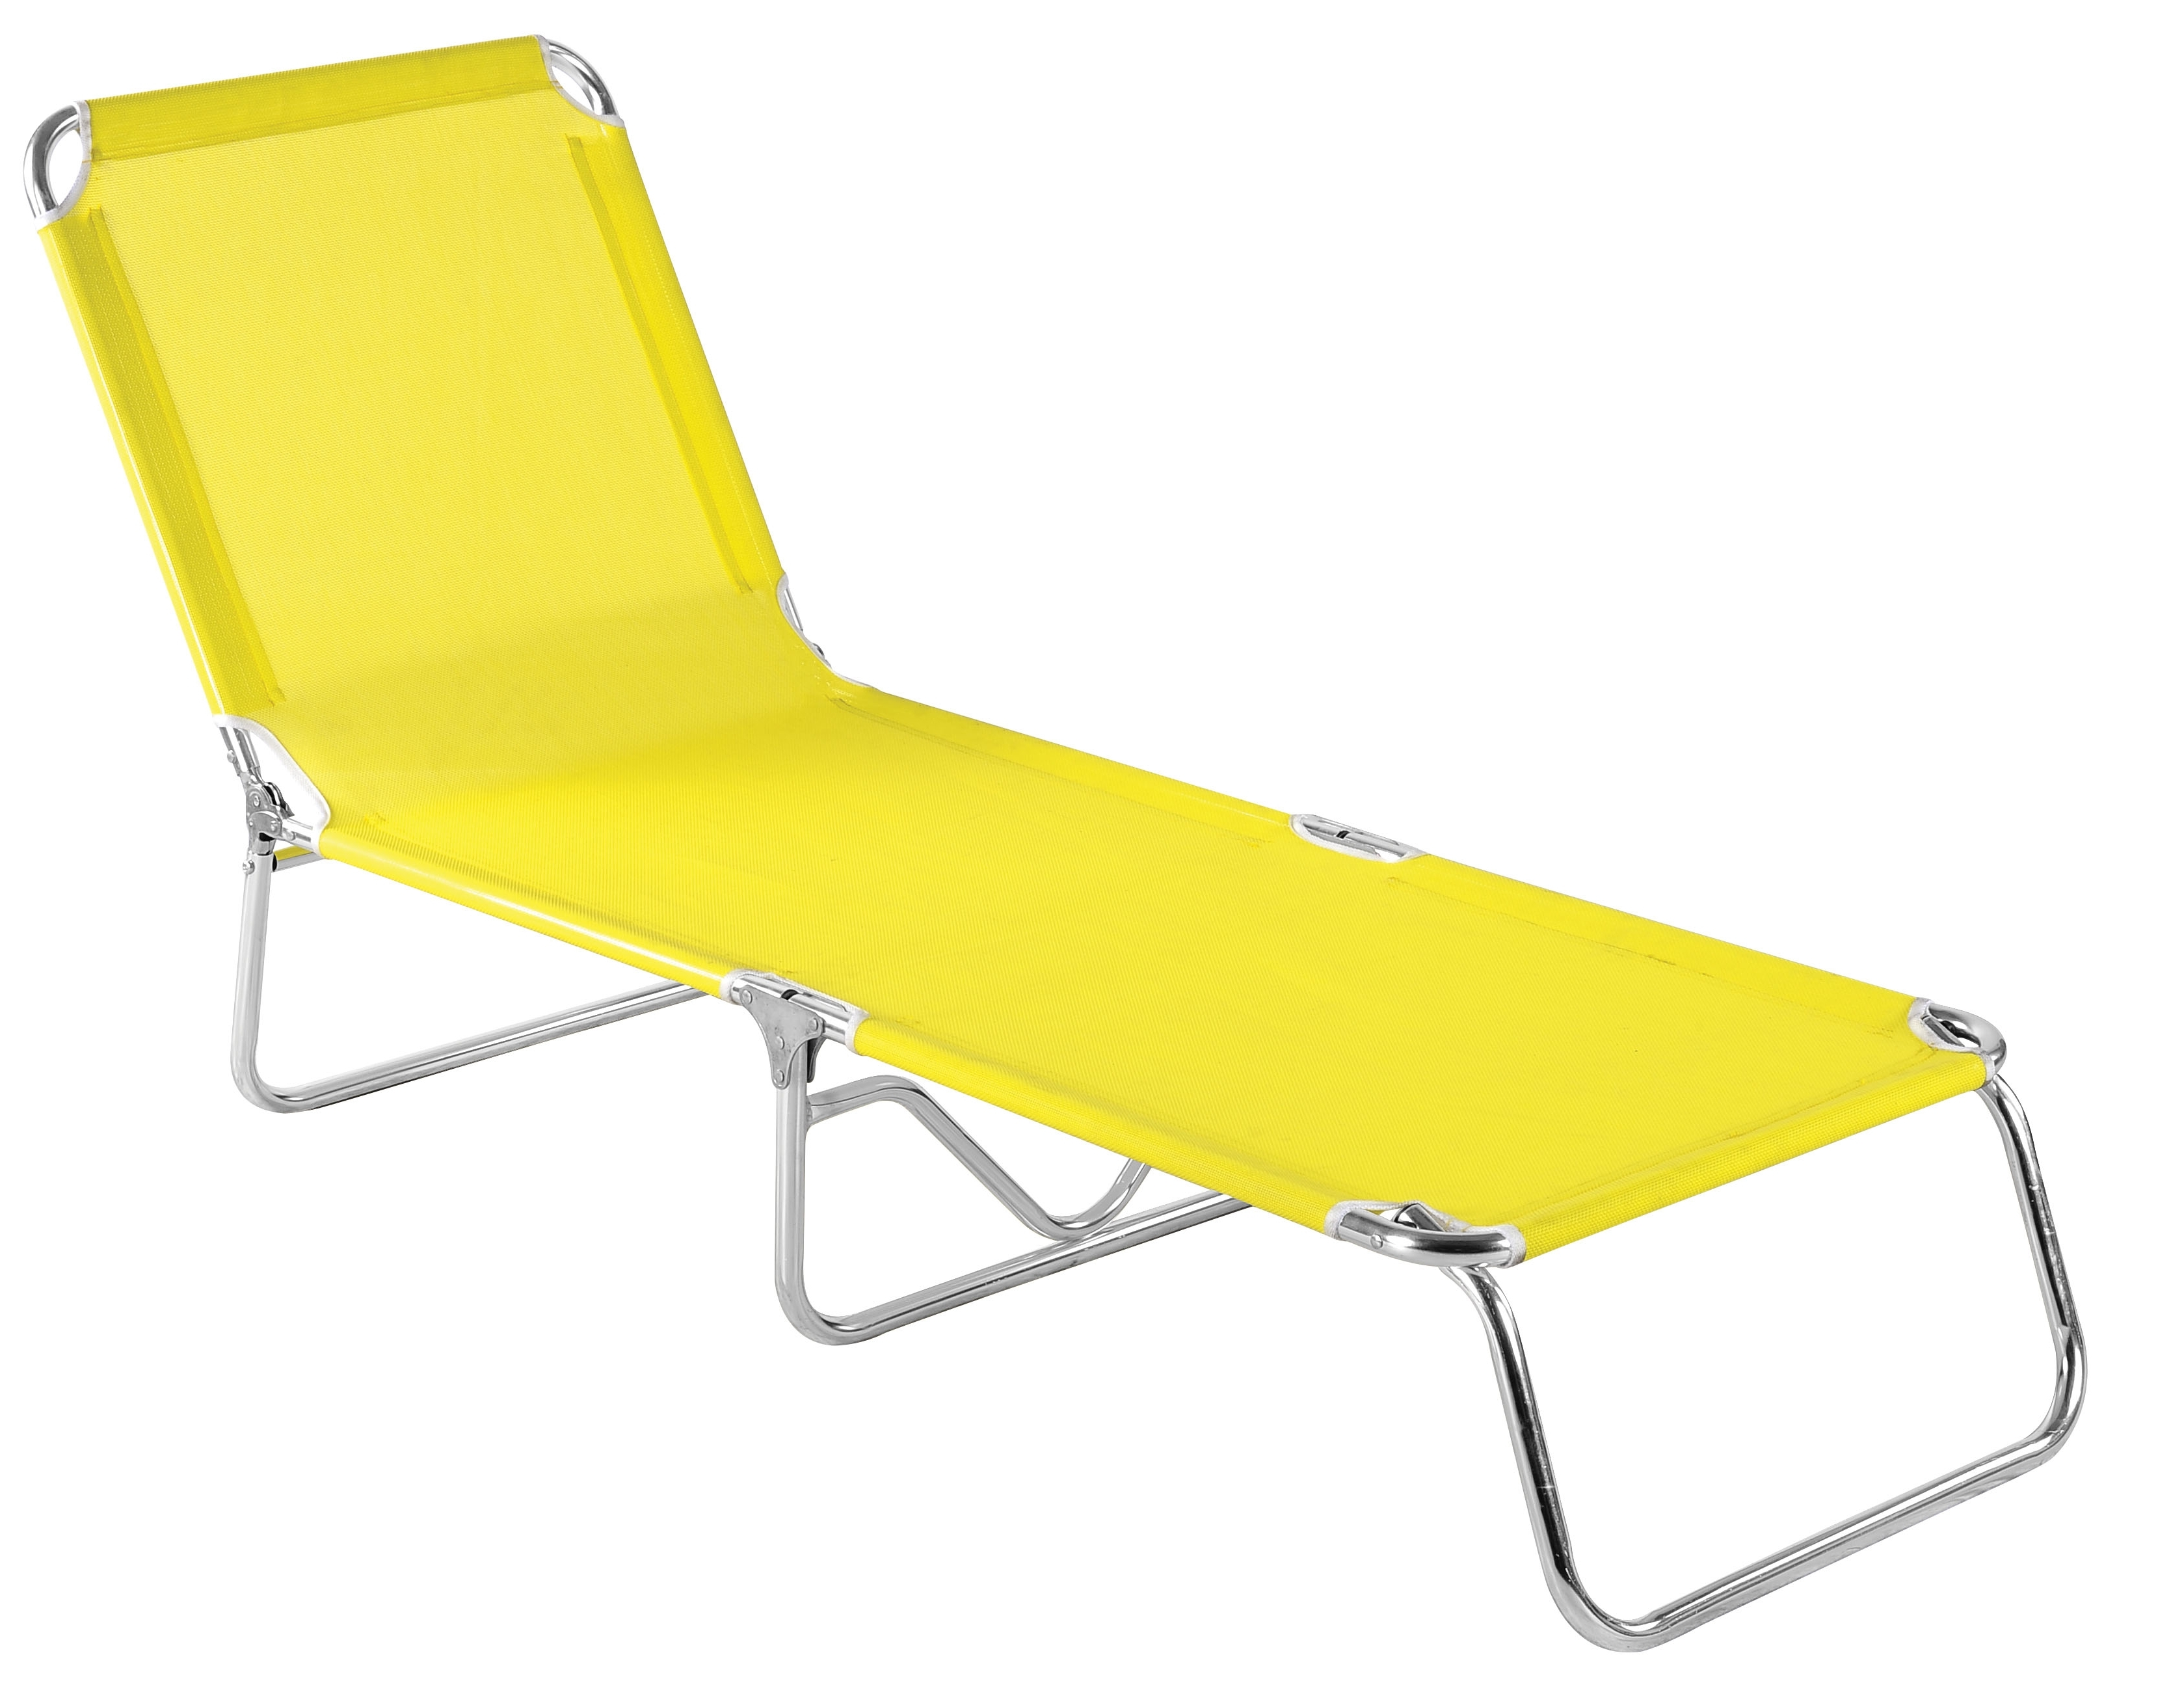 Most Current Folding Beach Chaise Lounge Chairs • Lounge Chairs Ideas With Regard To Beach Chaise Lounge Chairs (View 8 of 15)